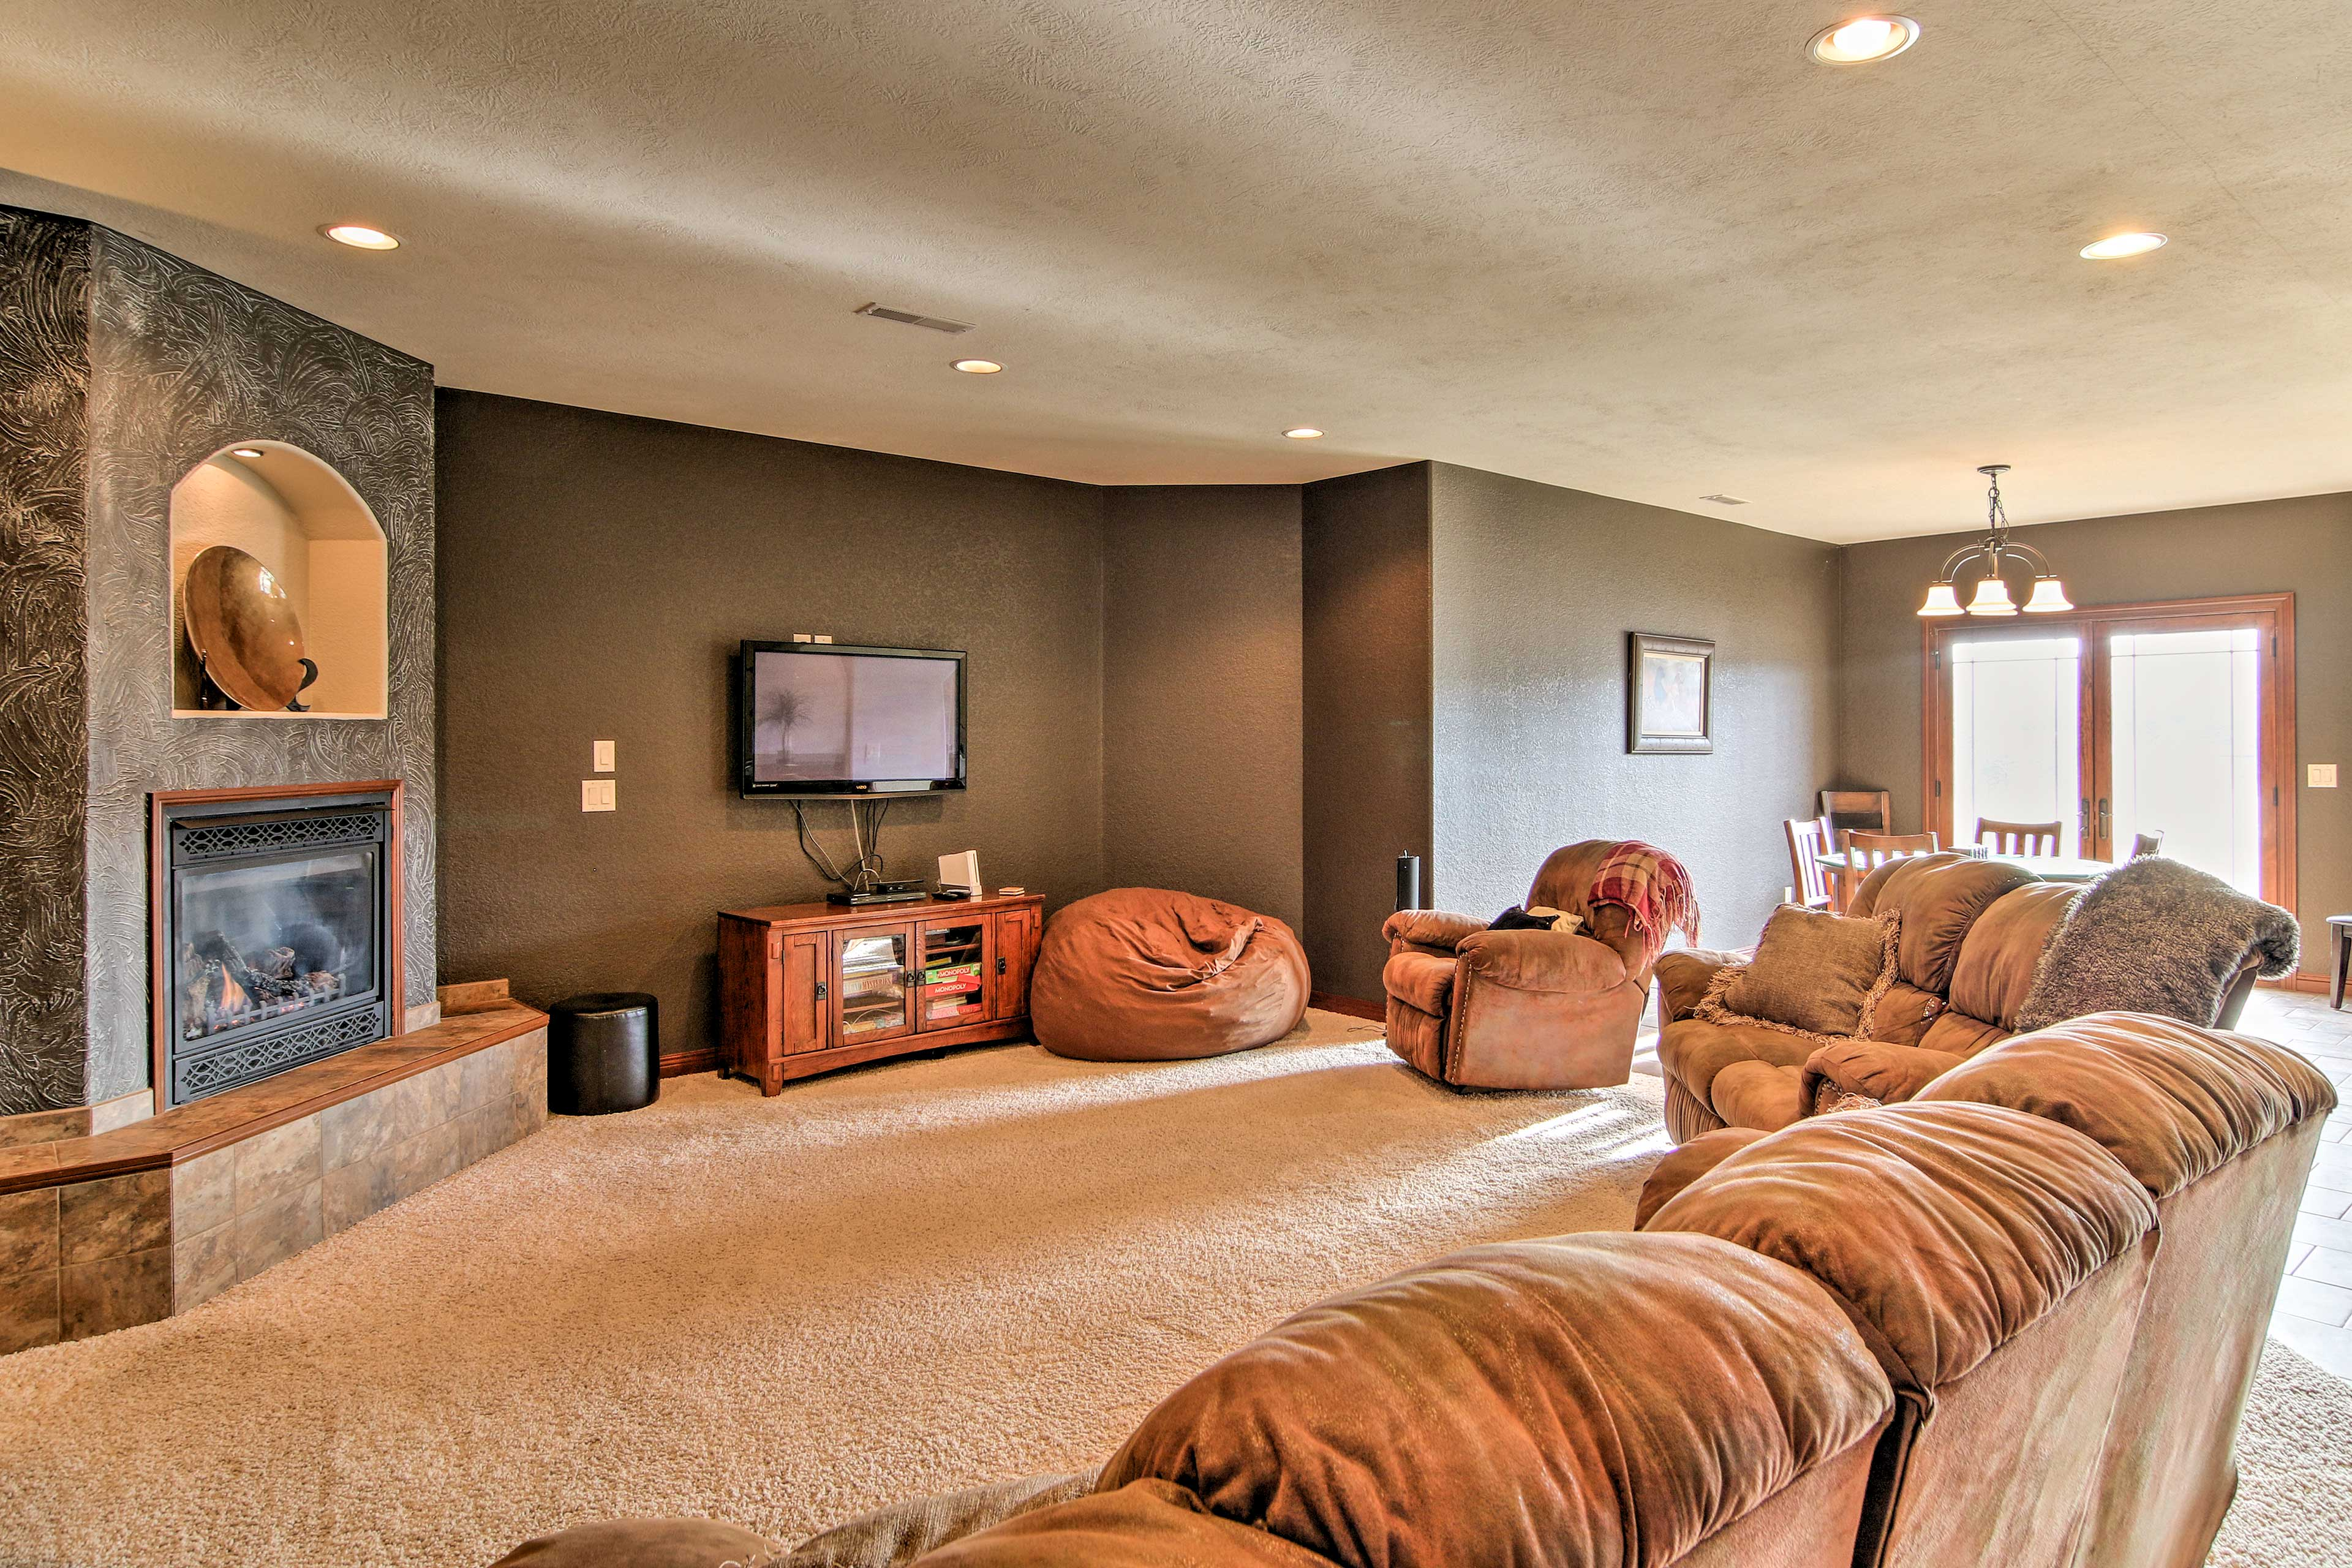 Spread out and unwind on the plush recliners.